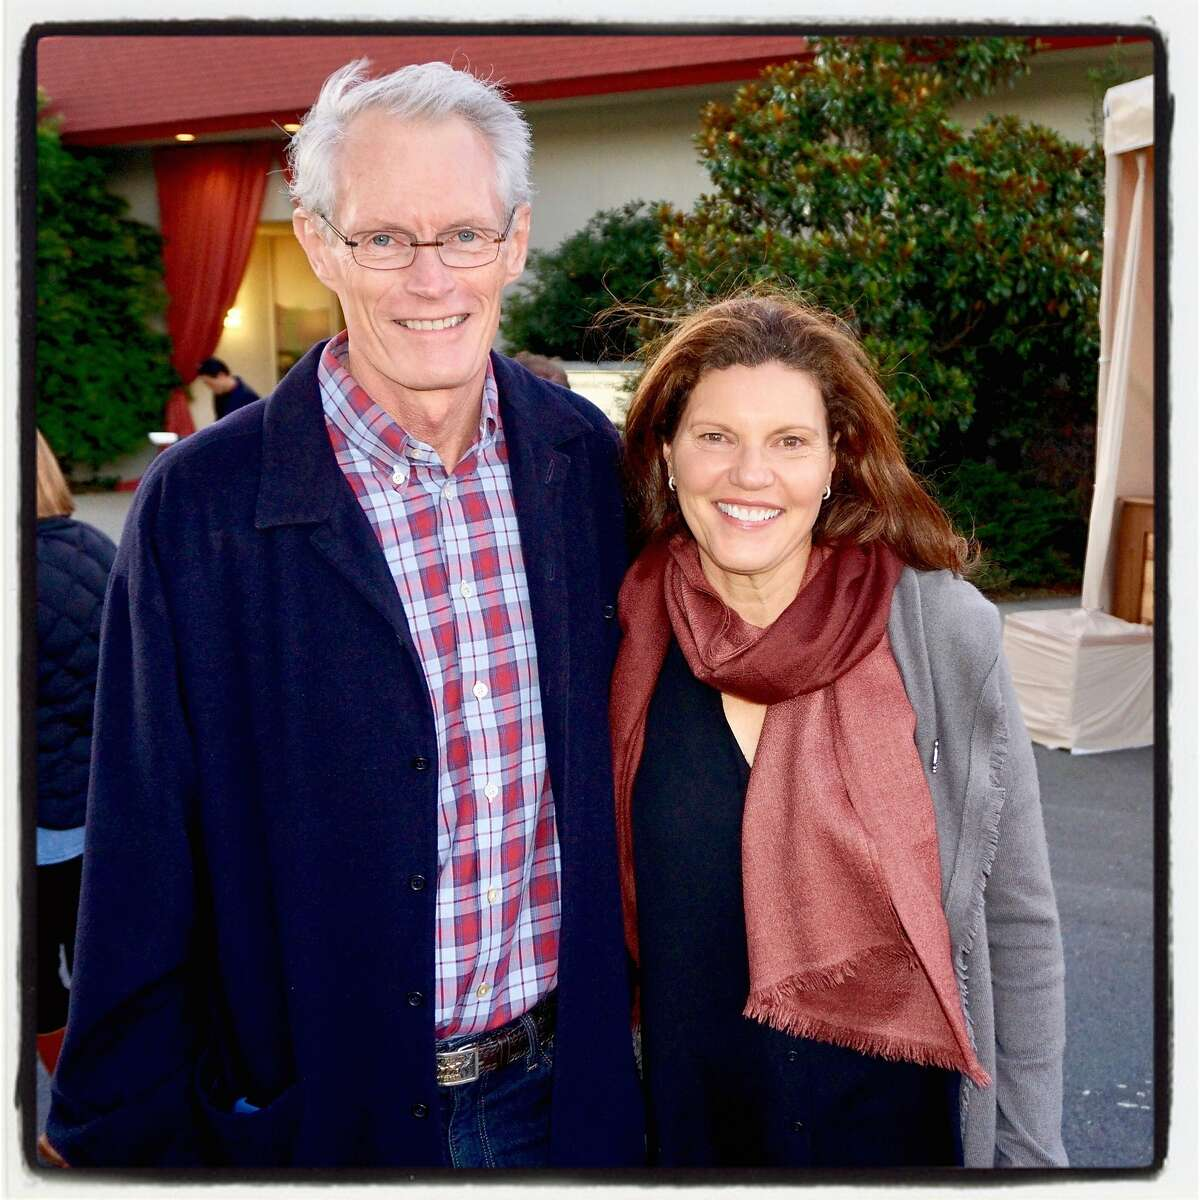 GGPNC Board Chairman Colin Lind and his wife, Anne, at the Trails Forever Dinner. Sept. 23. 2017.